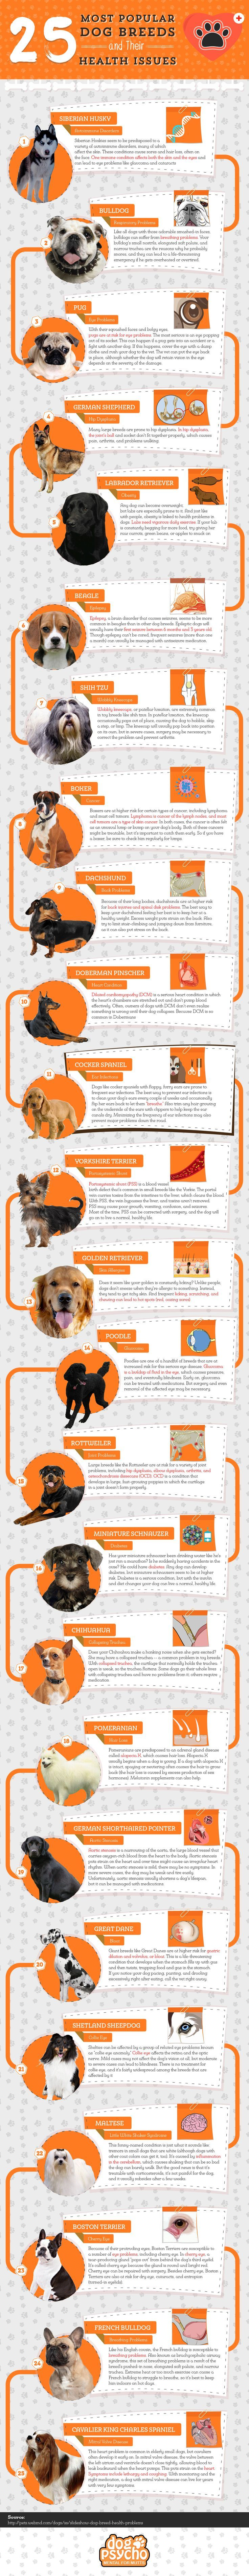 Most Popular Dog Breeds and Their Natural Health Problems Infographic Animals Dogs Health